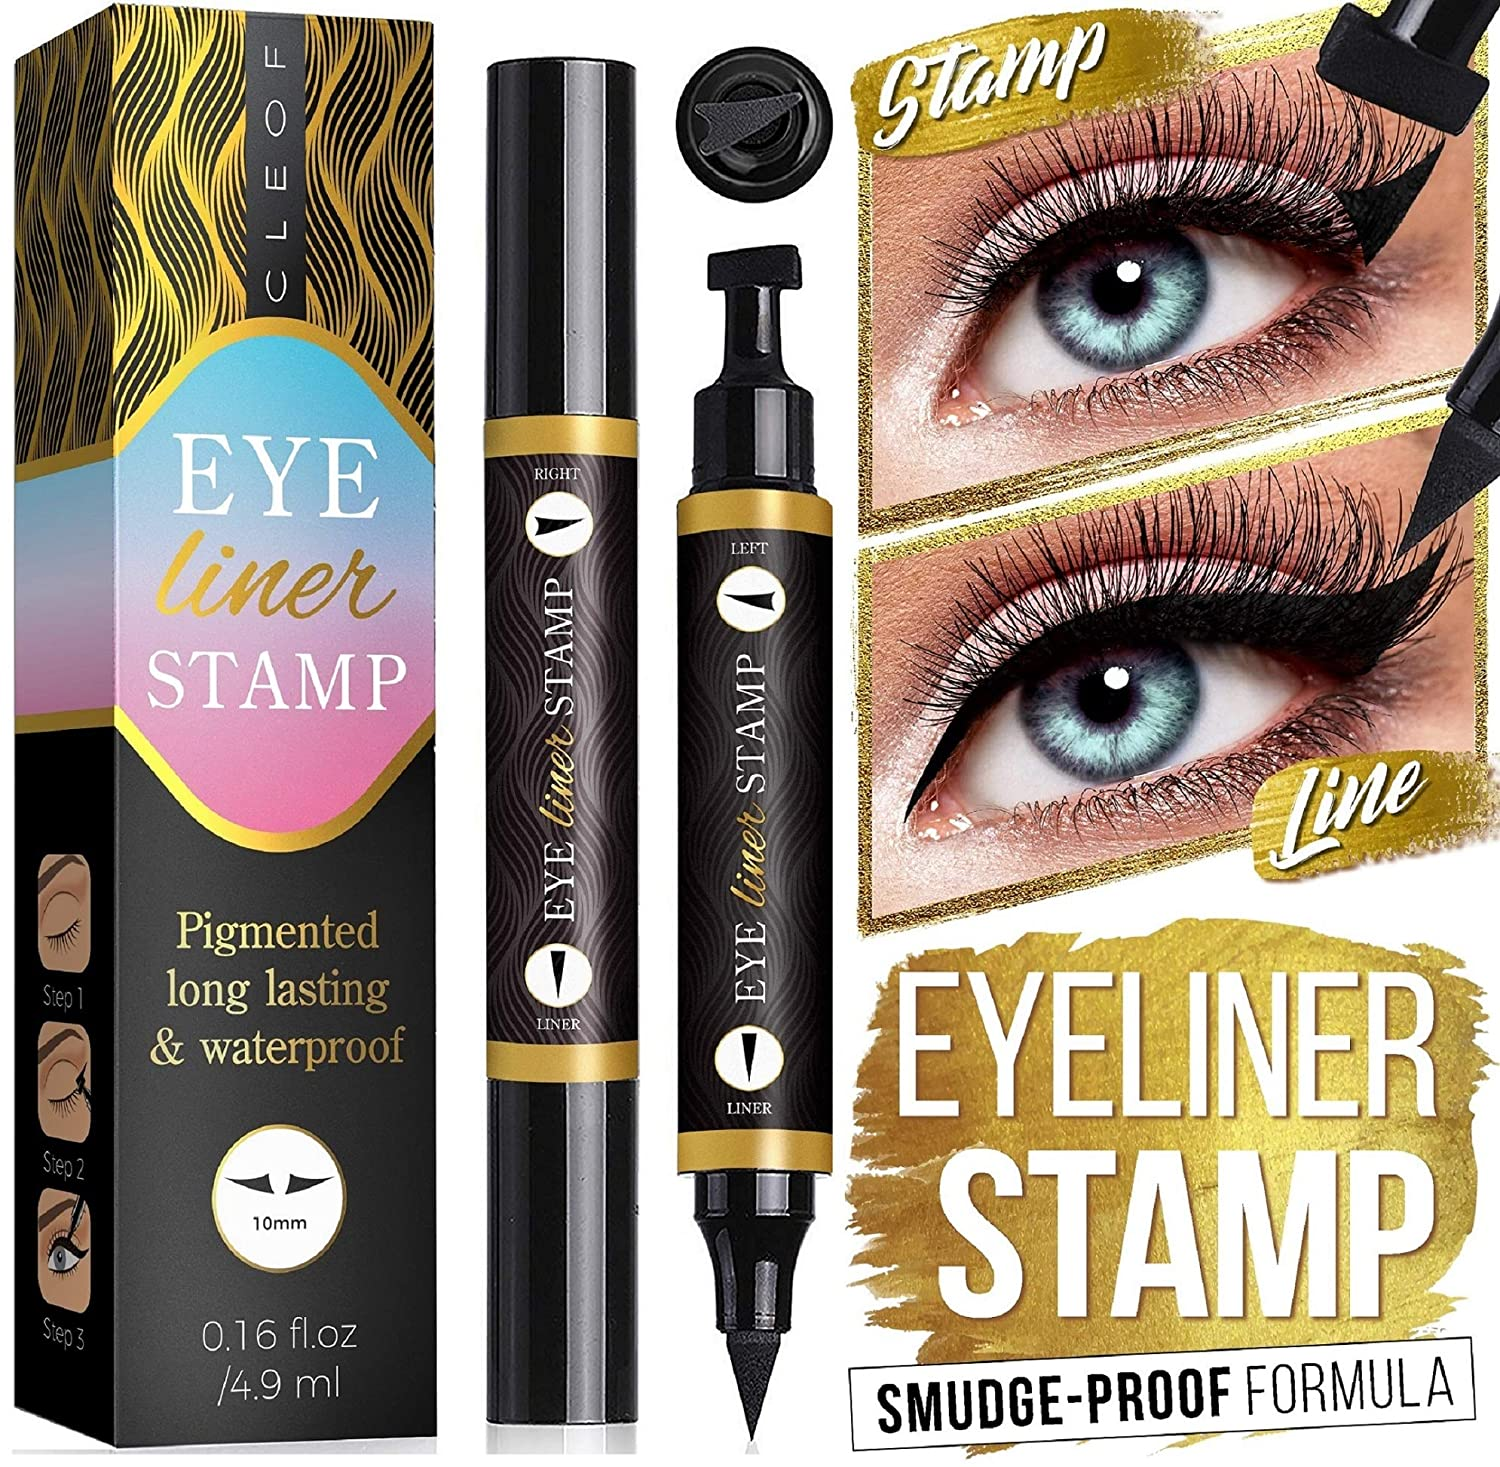 Eyeliner Stamp – One Second Perfect Wings – Quick and Easy to Use - Extremely Pigmented, Waterproof, Smudge-Proof - CrueltyFree and Vegan - for Perfect Cat Eyes (10 mm)